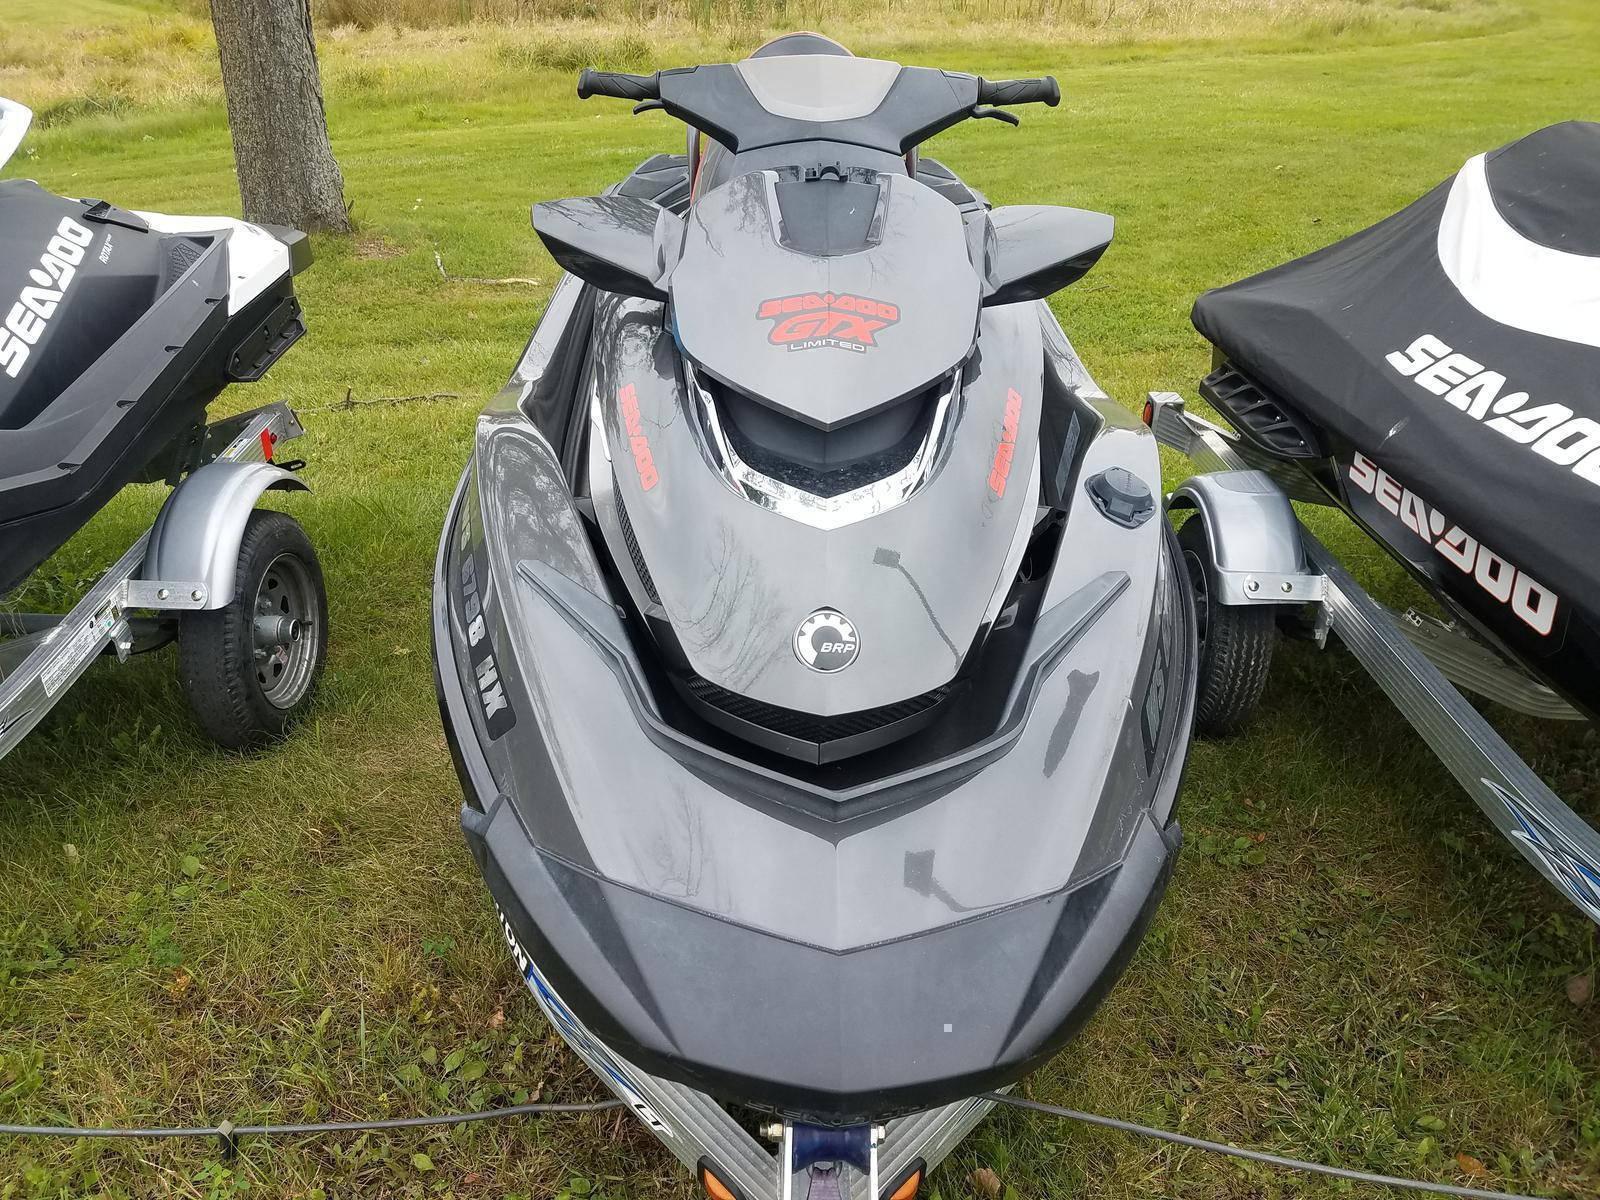 2013 Sea Doo Gtx Limited Is 260 For Sale In Deforest Wi Mad City Seadoo Fuse Box 20180928 112545